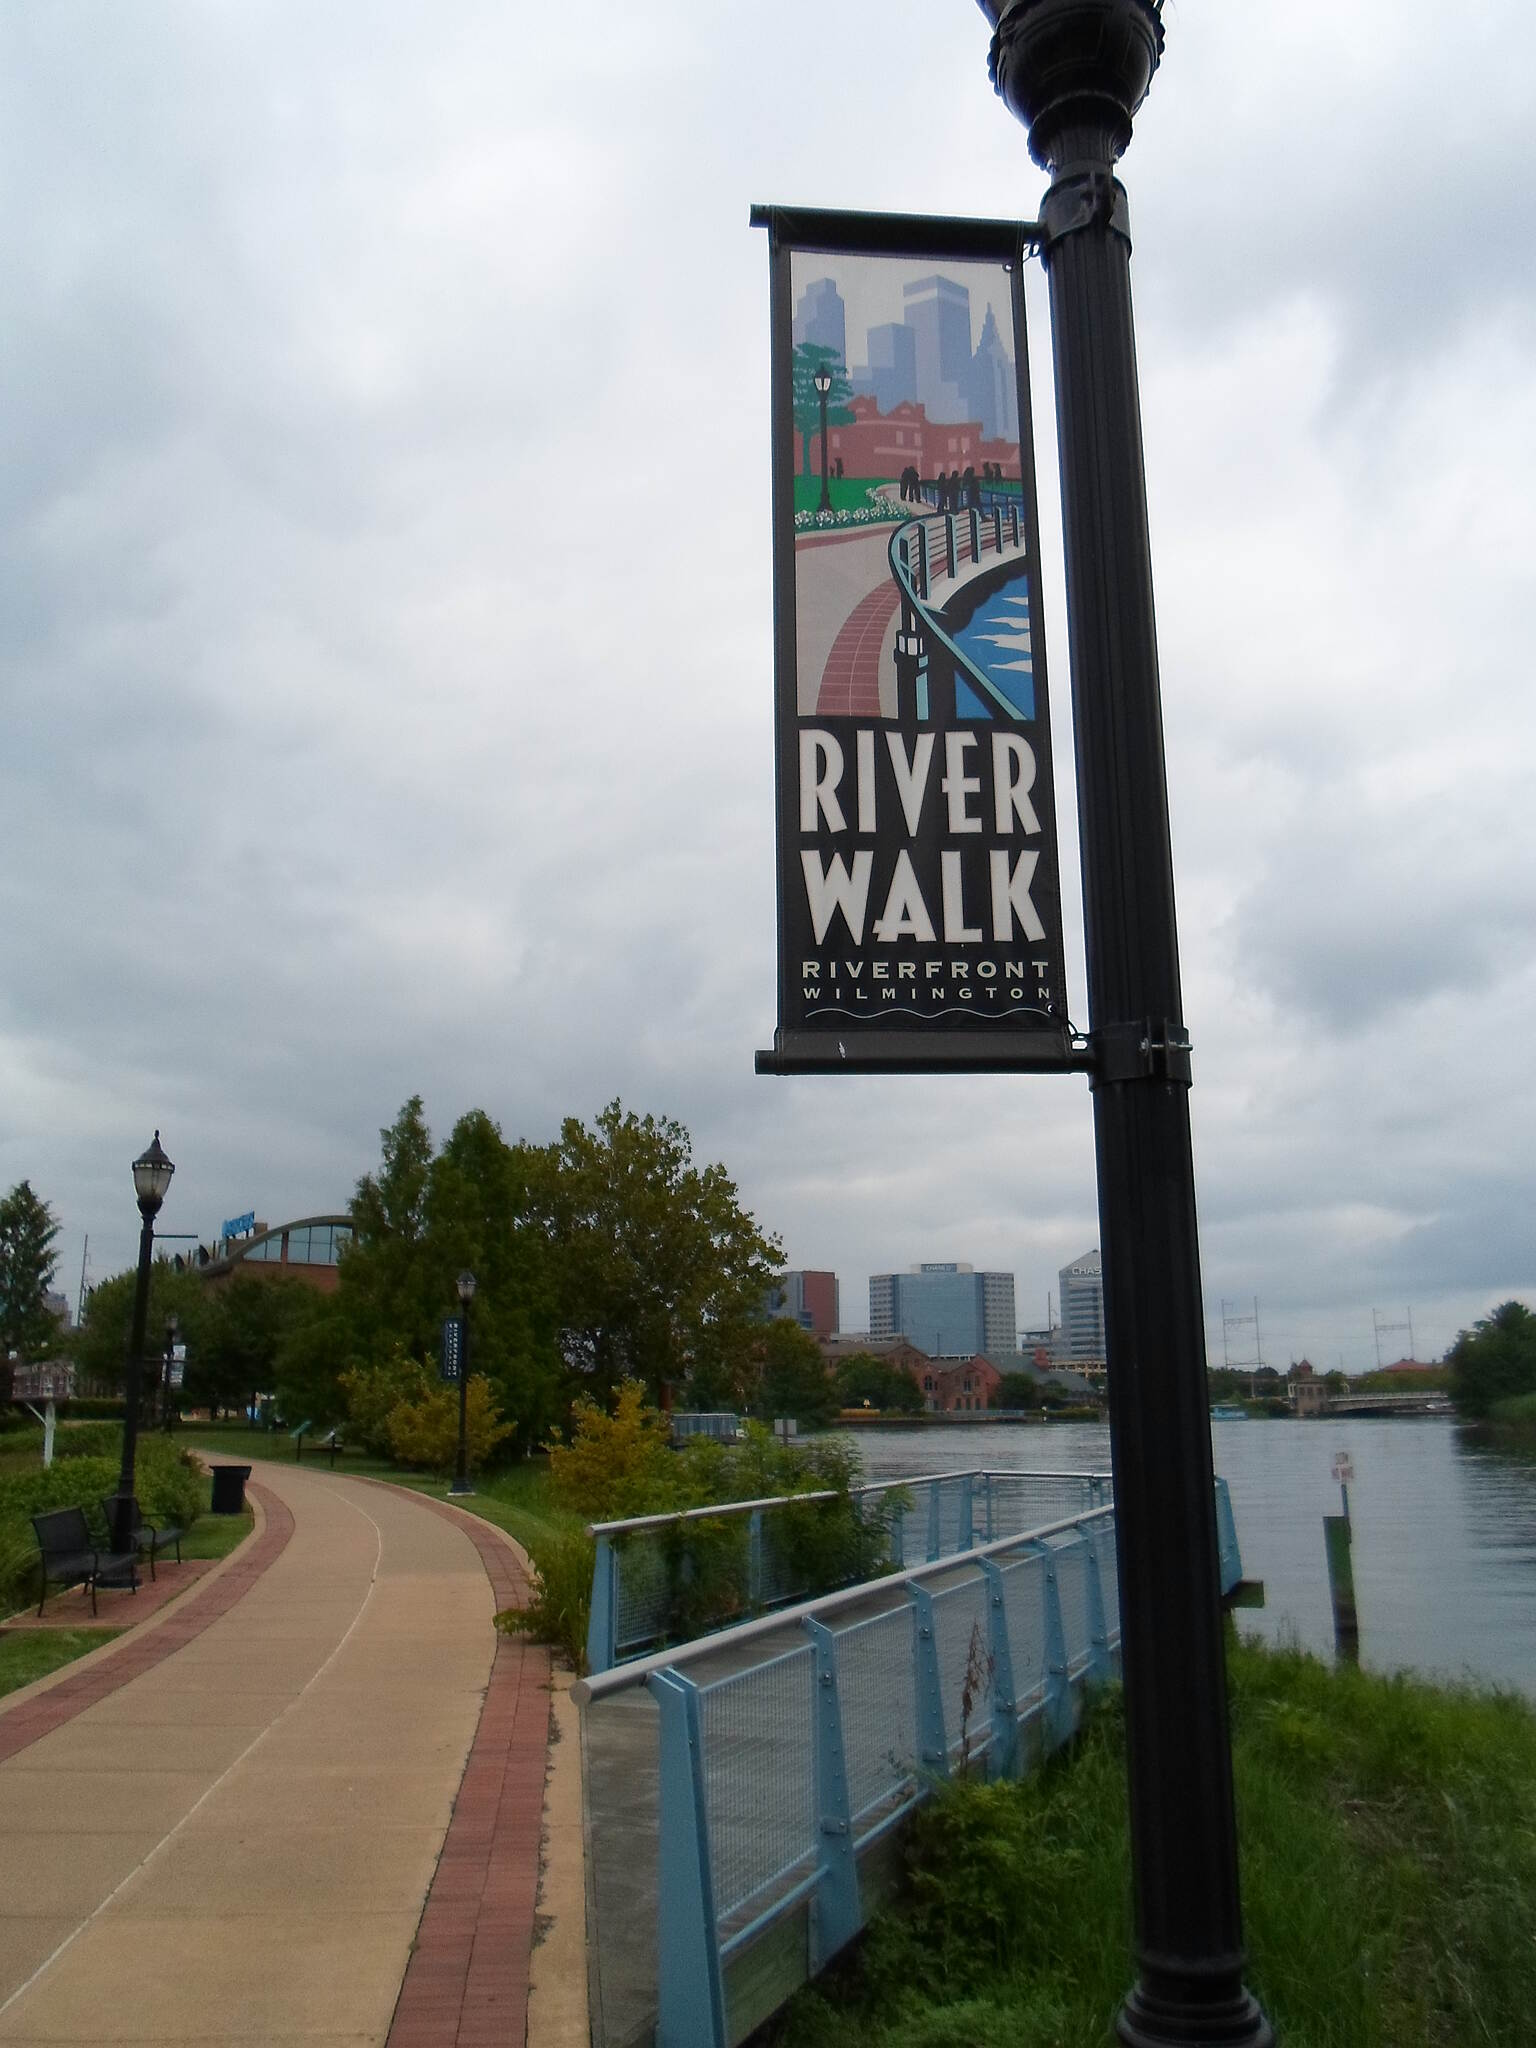 Christina Riverwalk Christina Riverwalk Decorative banner.